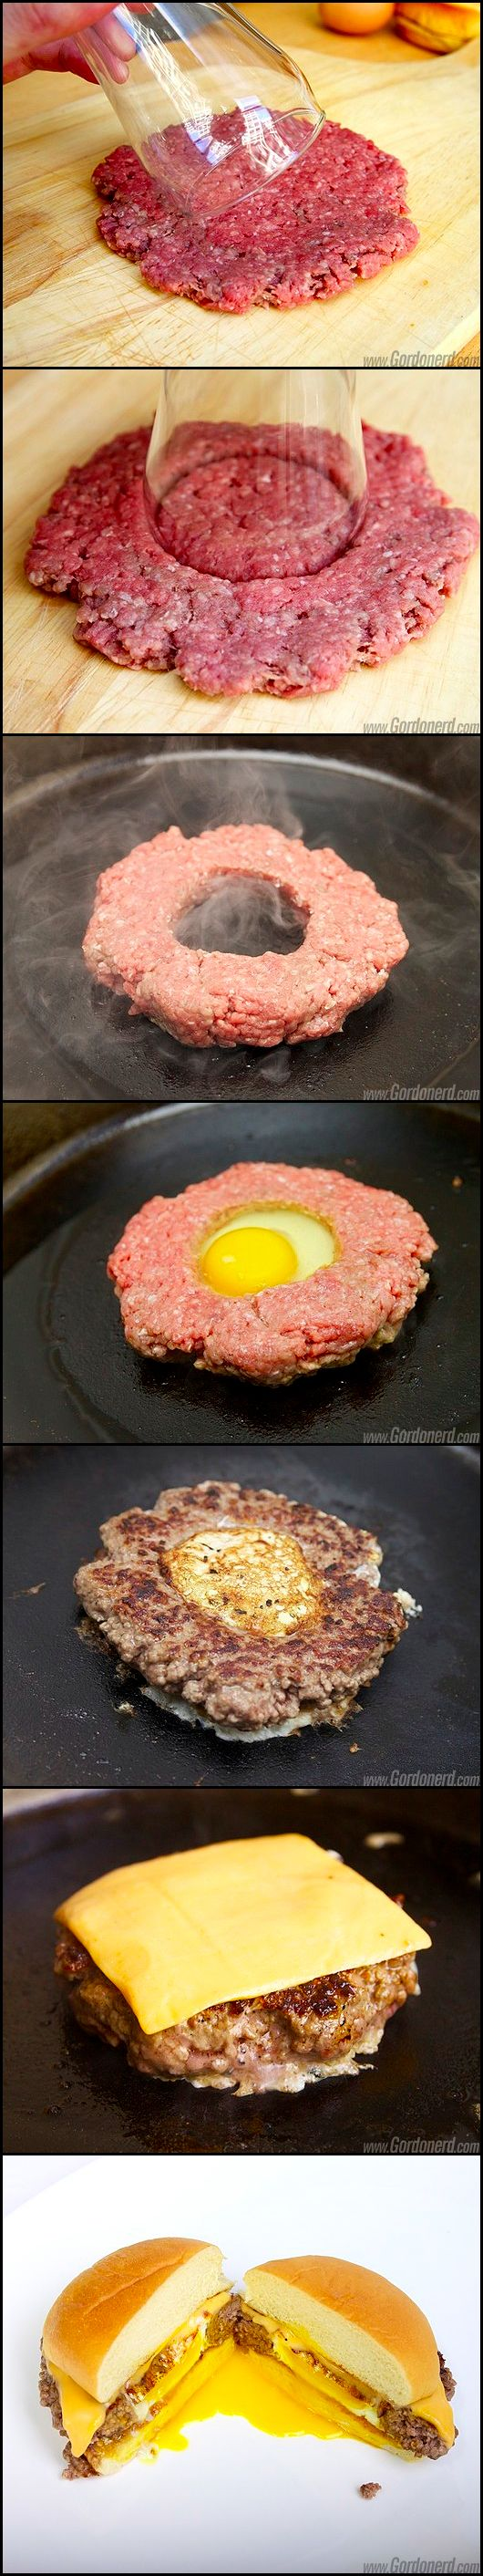 hamburger + egg. really want to try!